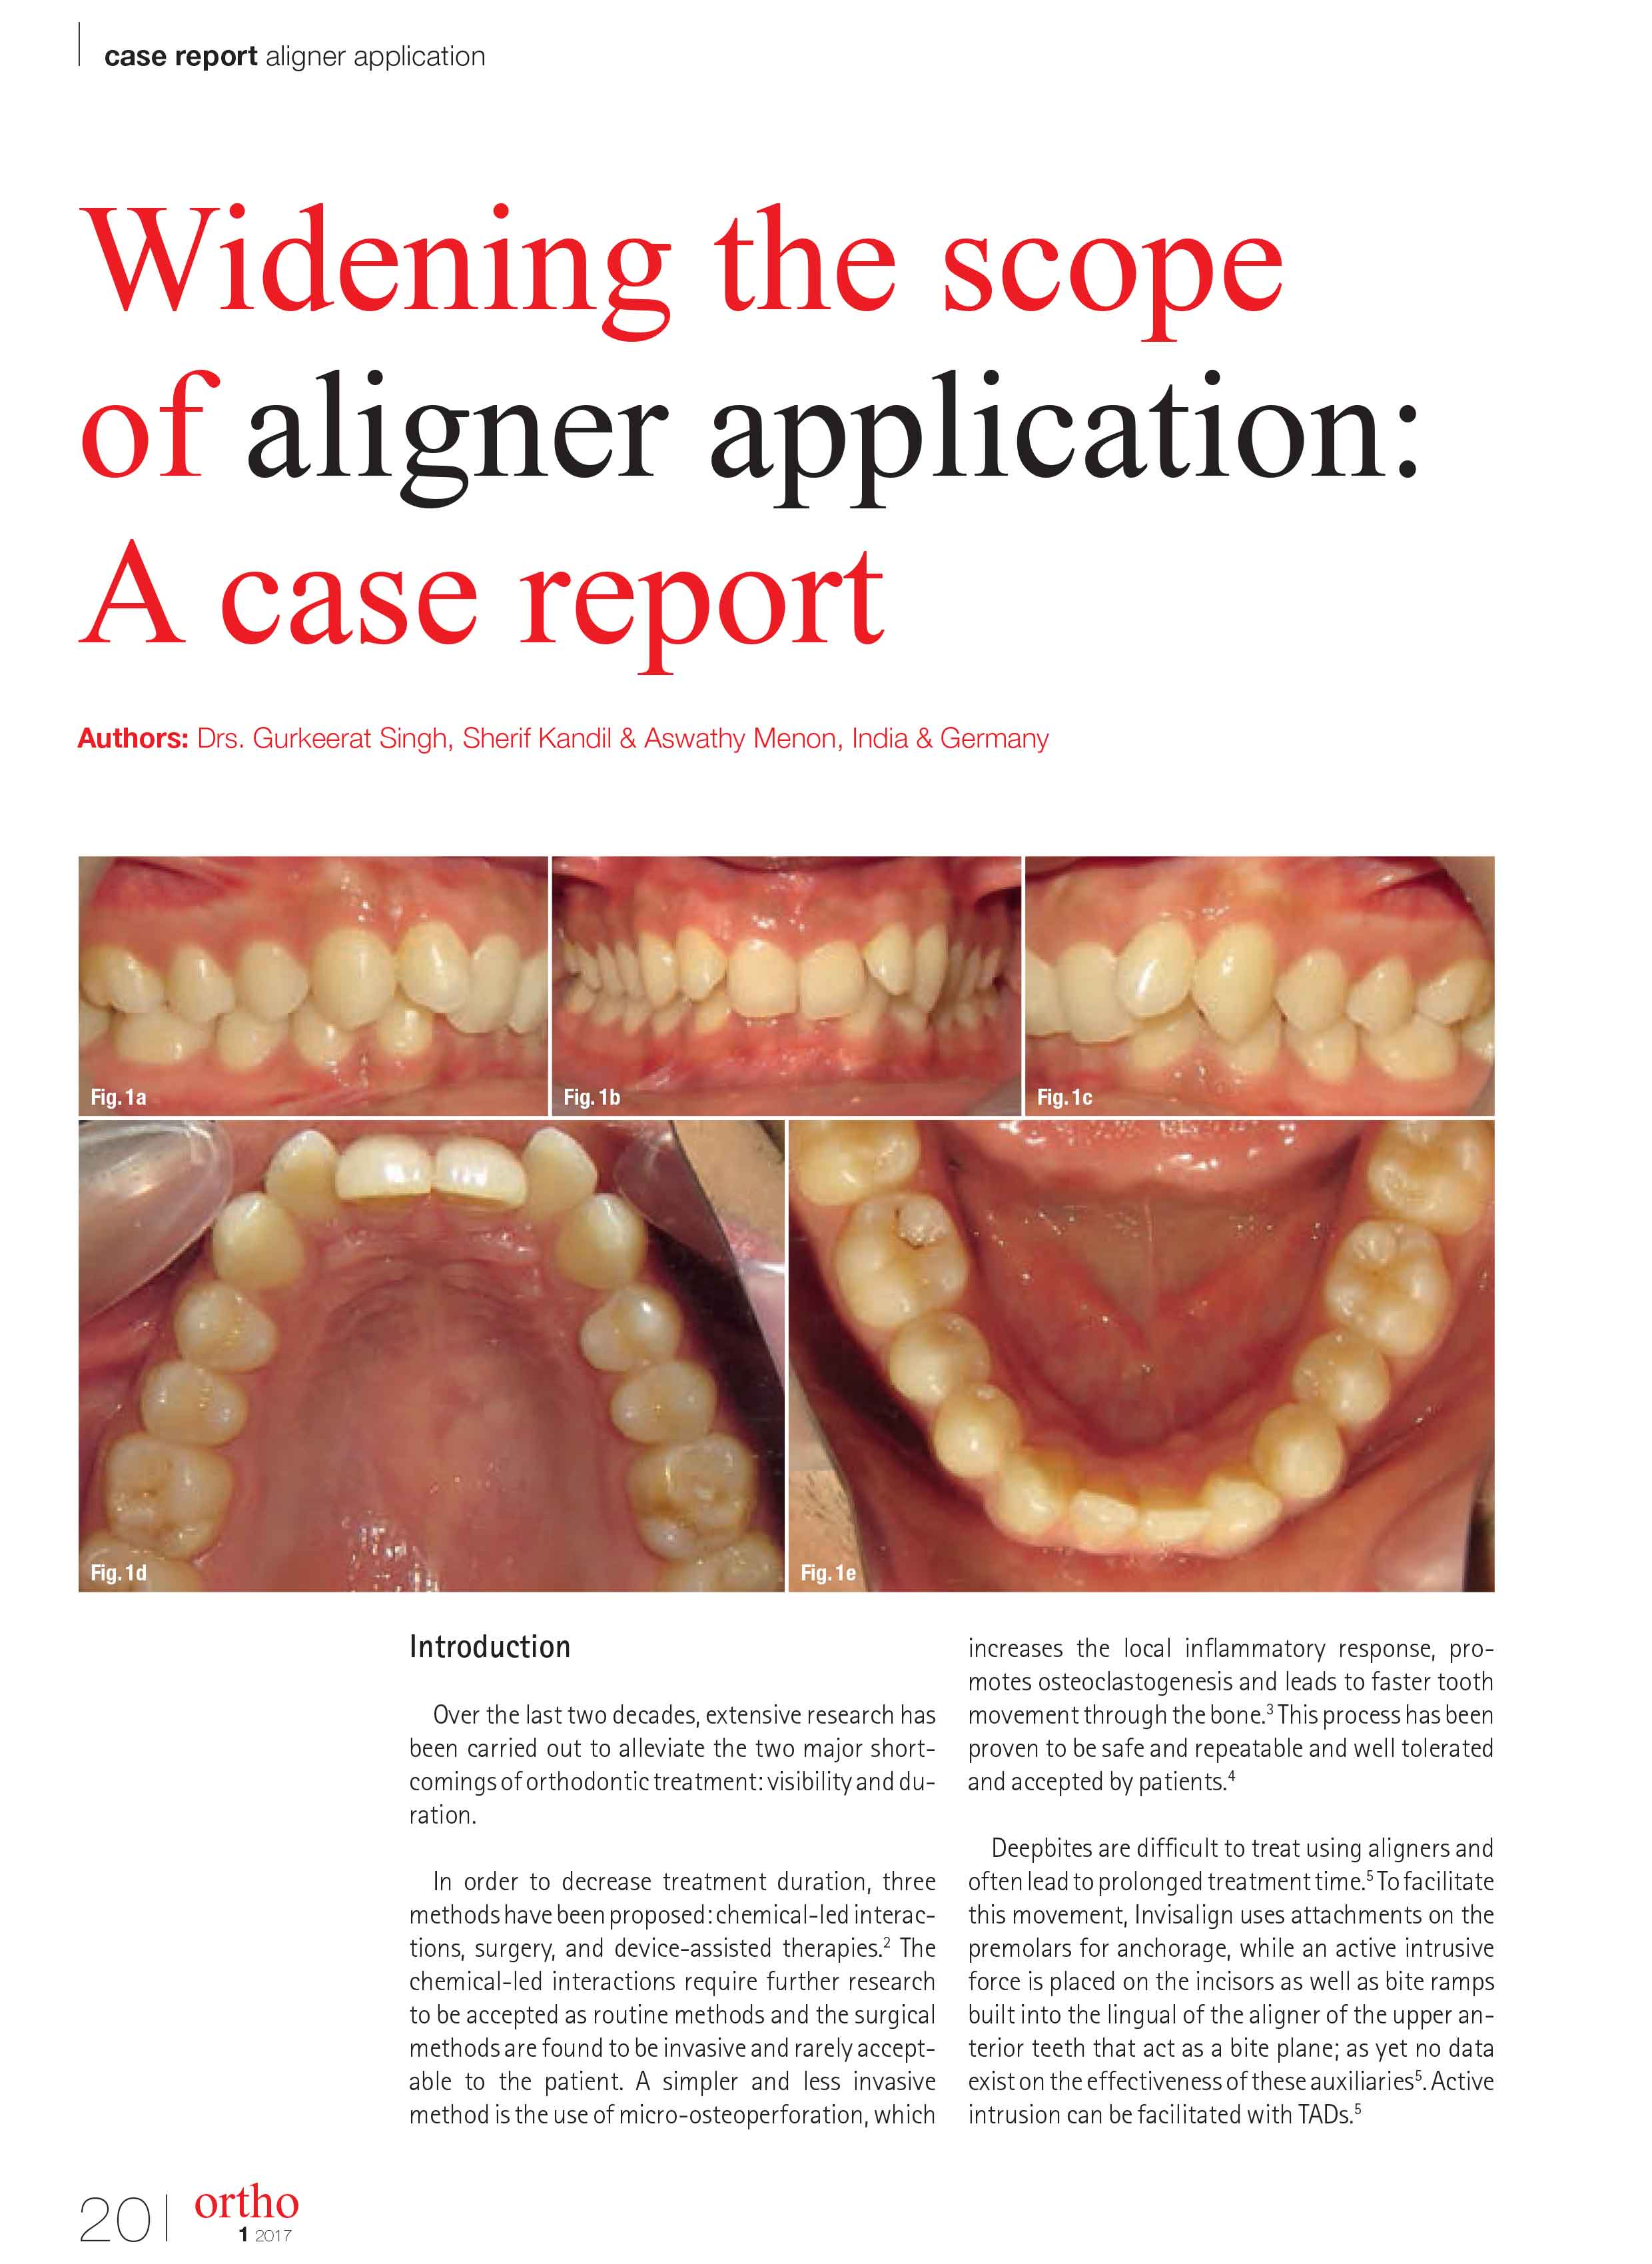 Widening the scope of aligner application